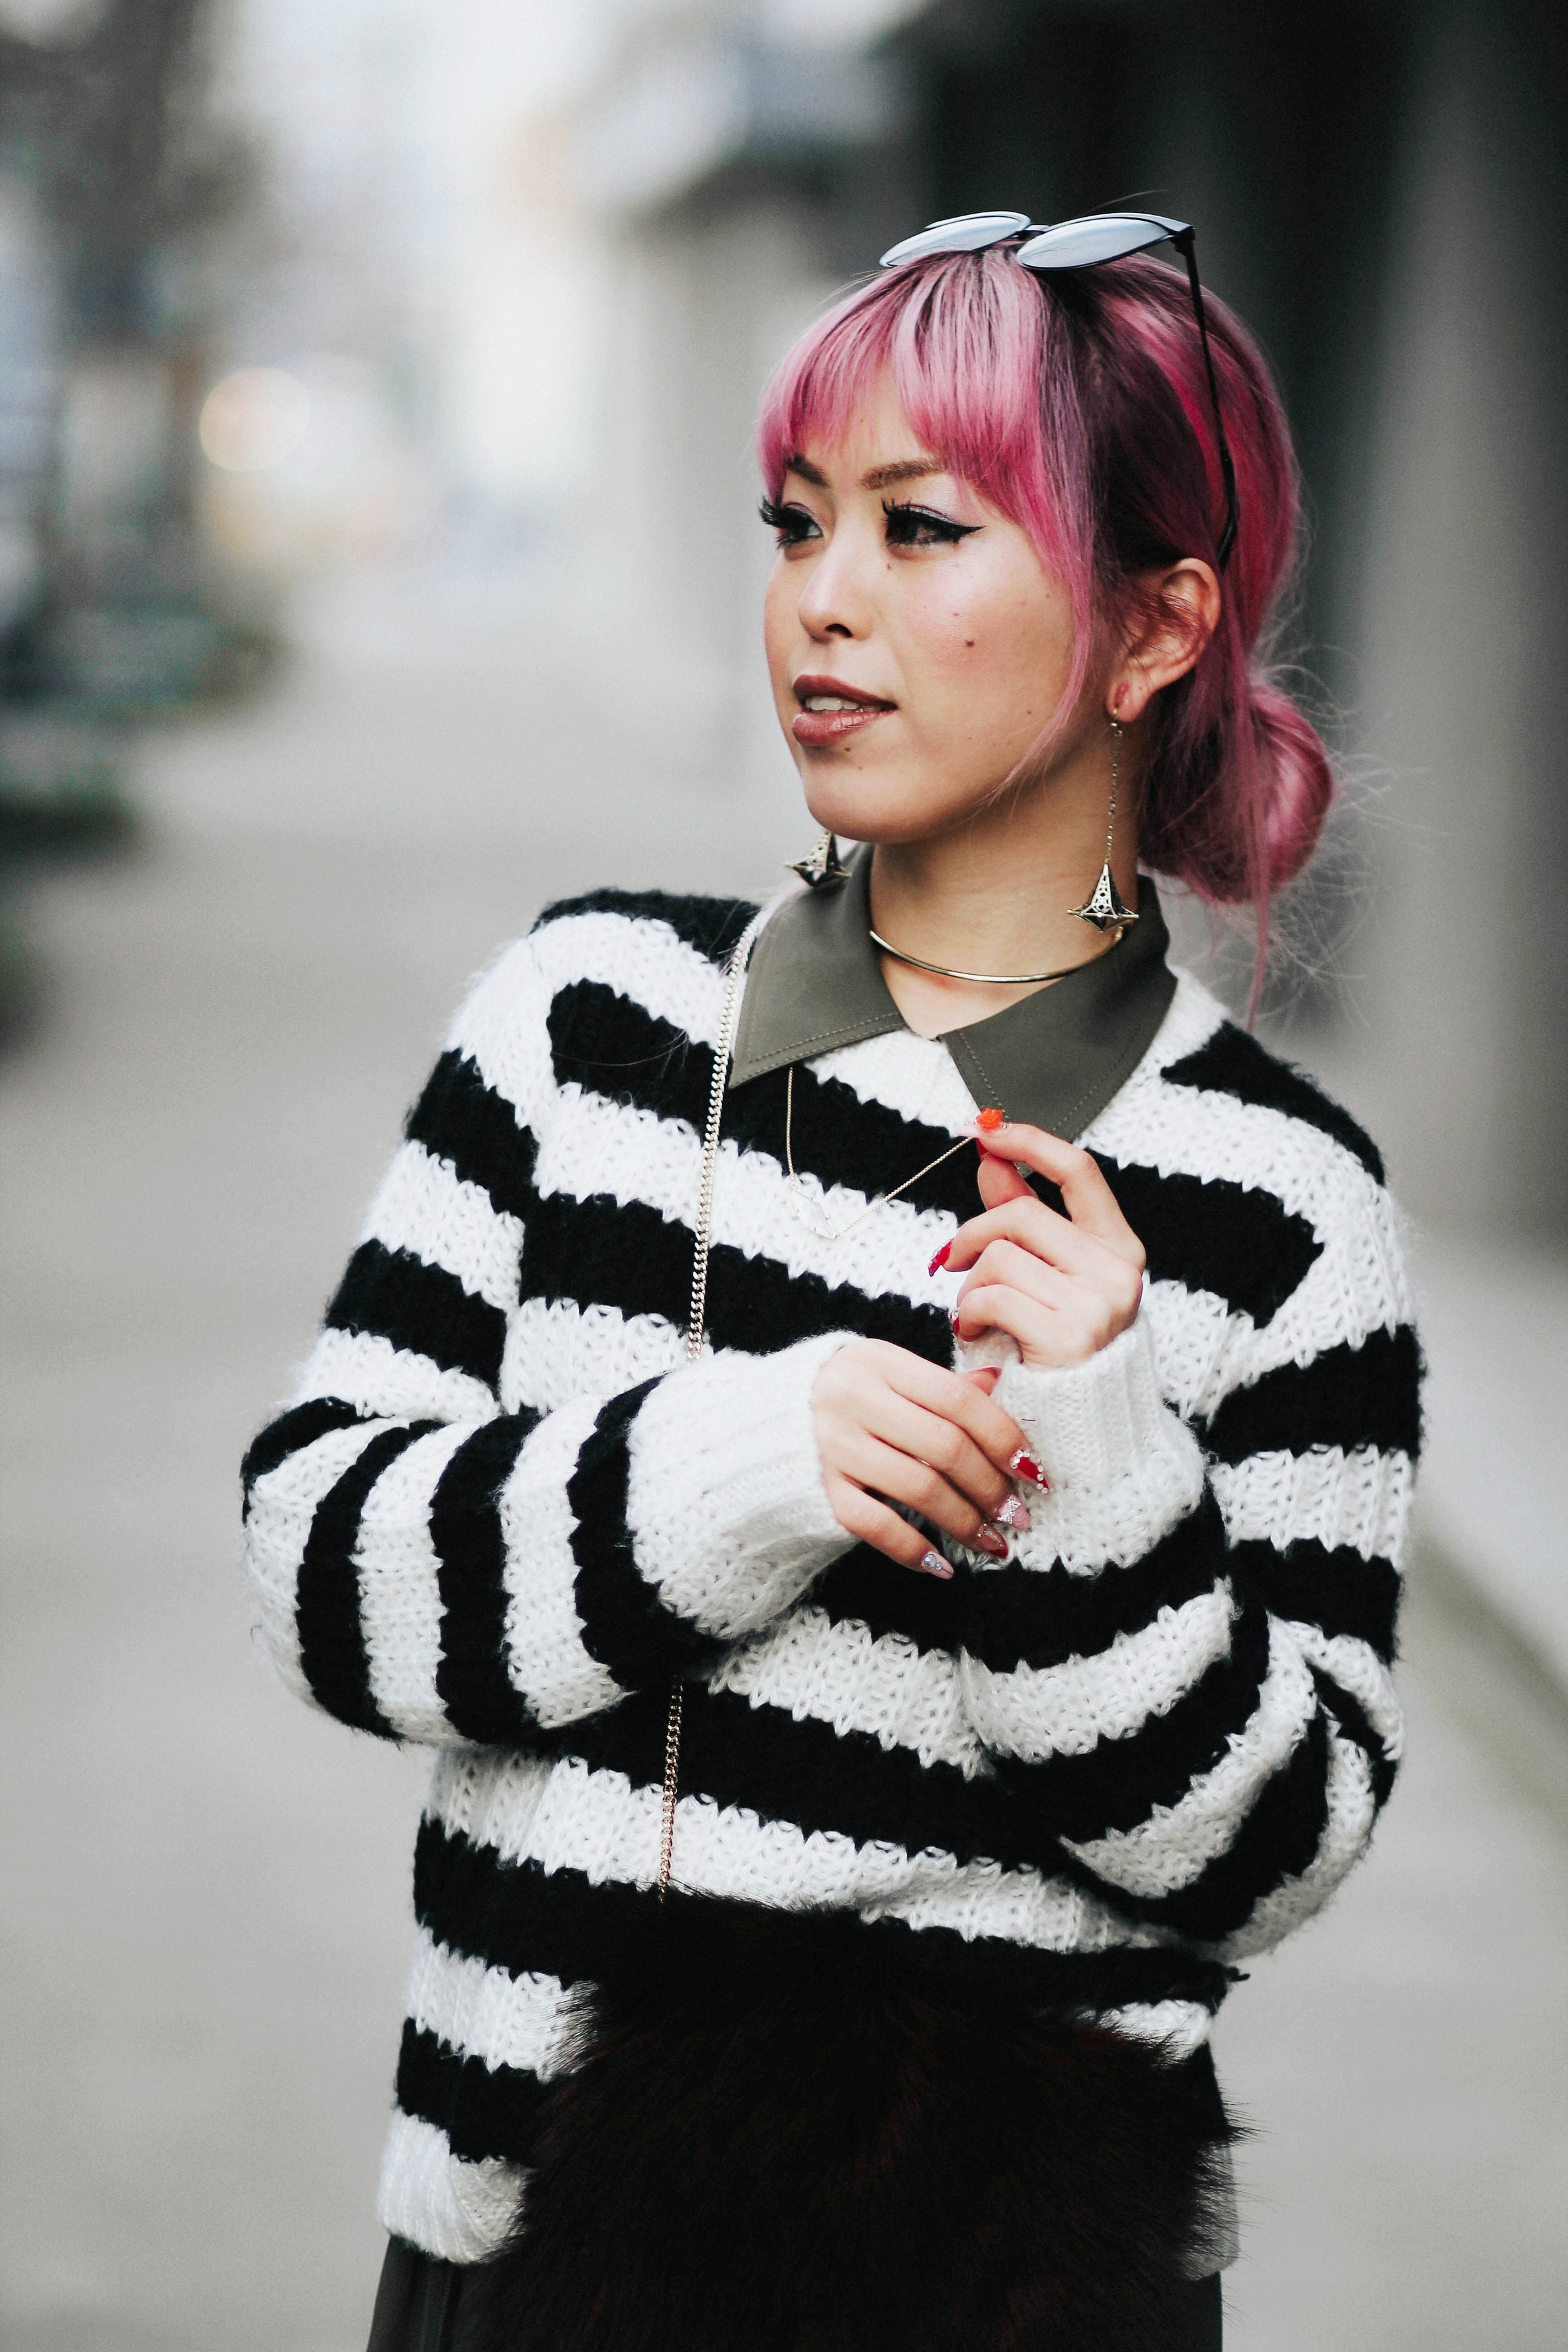 Who What Wear Striped Sweater_DVF Clarise Midi Shirt Dress_DVF Fur Bag_Kendra Scott Diana Shoulder Duster Earrings In Antique Brass_Amazon Fishnet Tights_ZARA ASYMMETRIC LEATHER HIGH HEEL SHOES_Aikas Love Closet_Seattle Fashion Blogger_japanese_Pink Hair 12